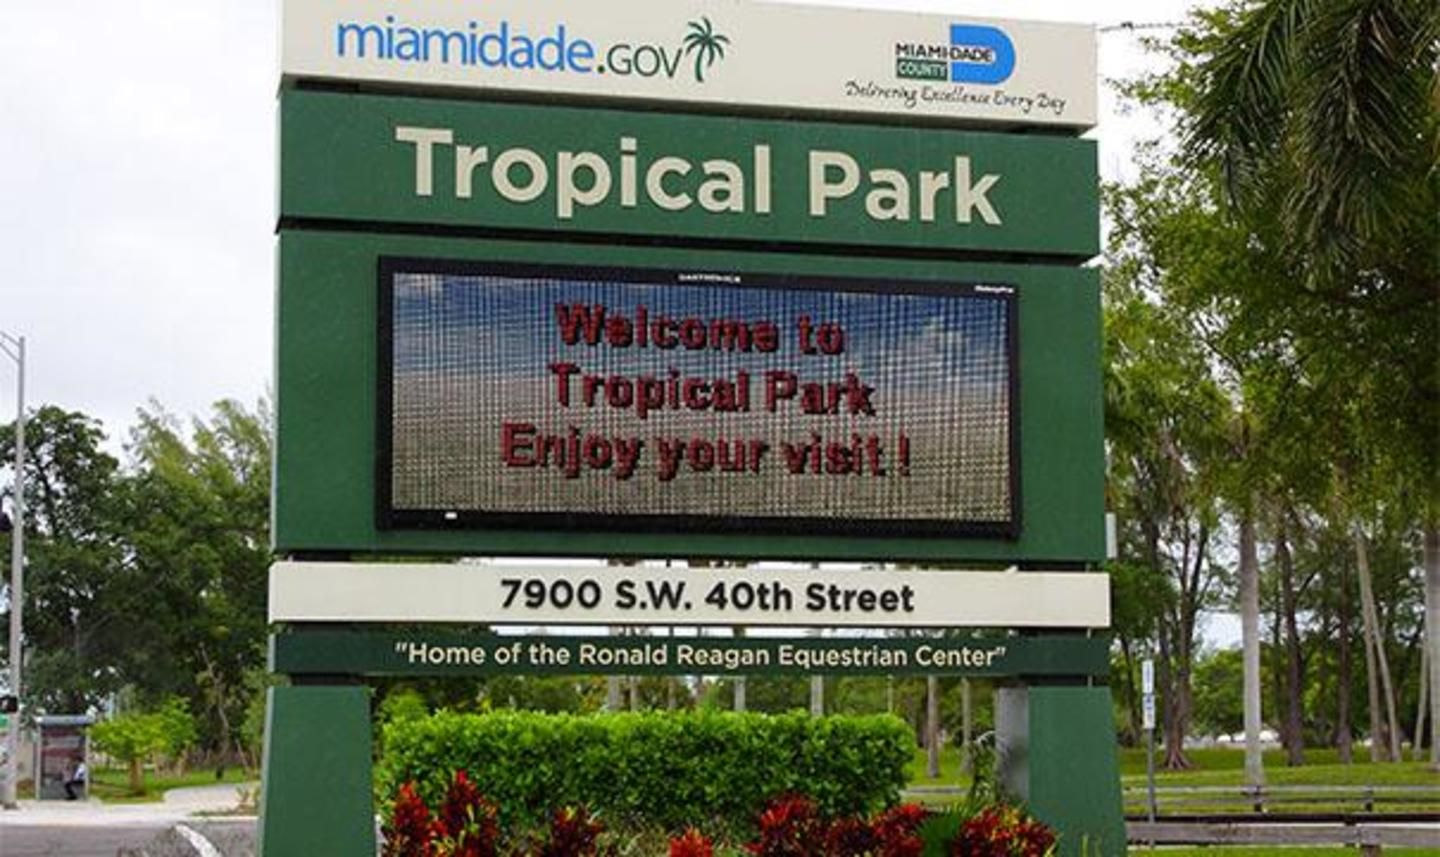 Tropical Park Entrance sign